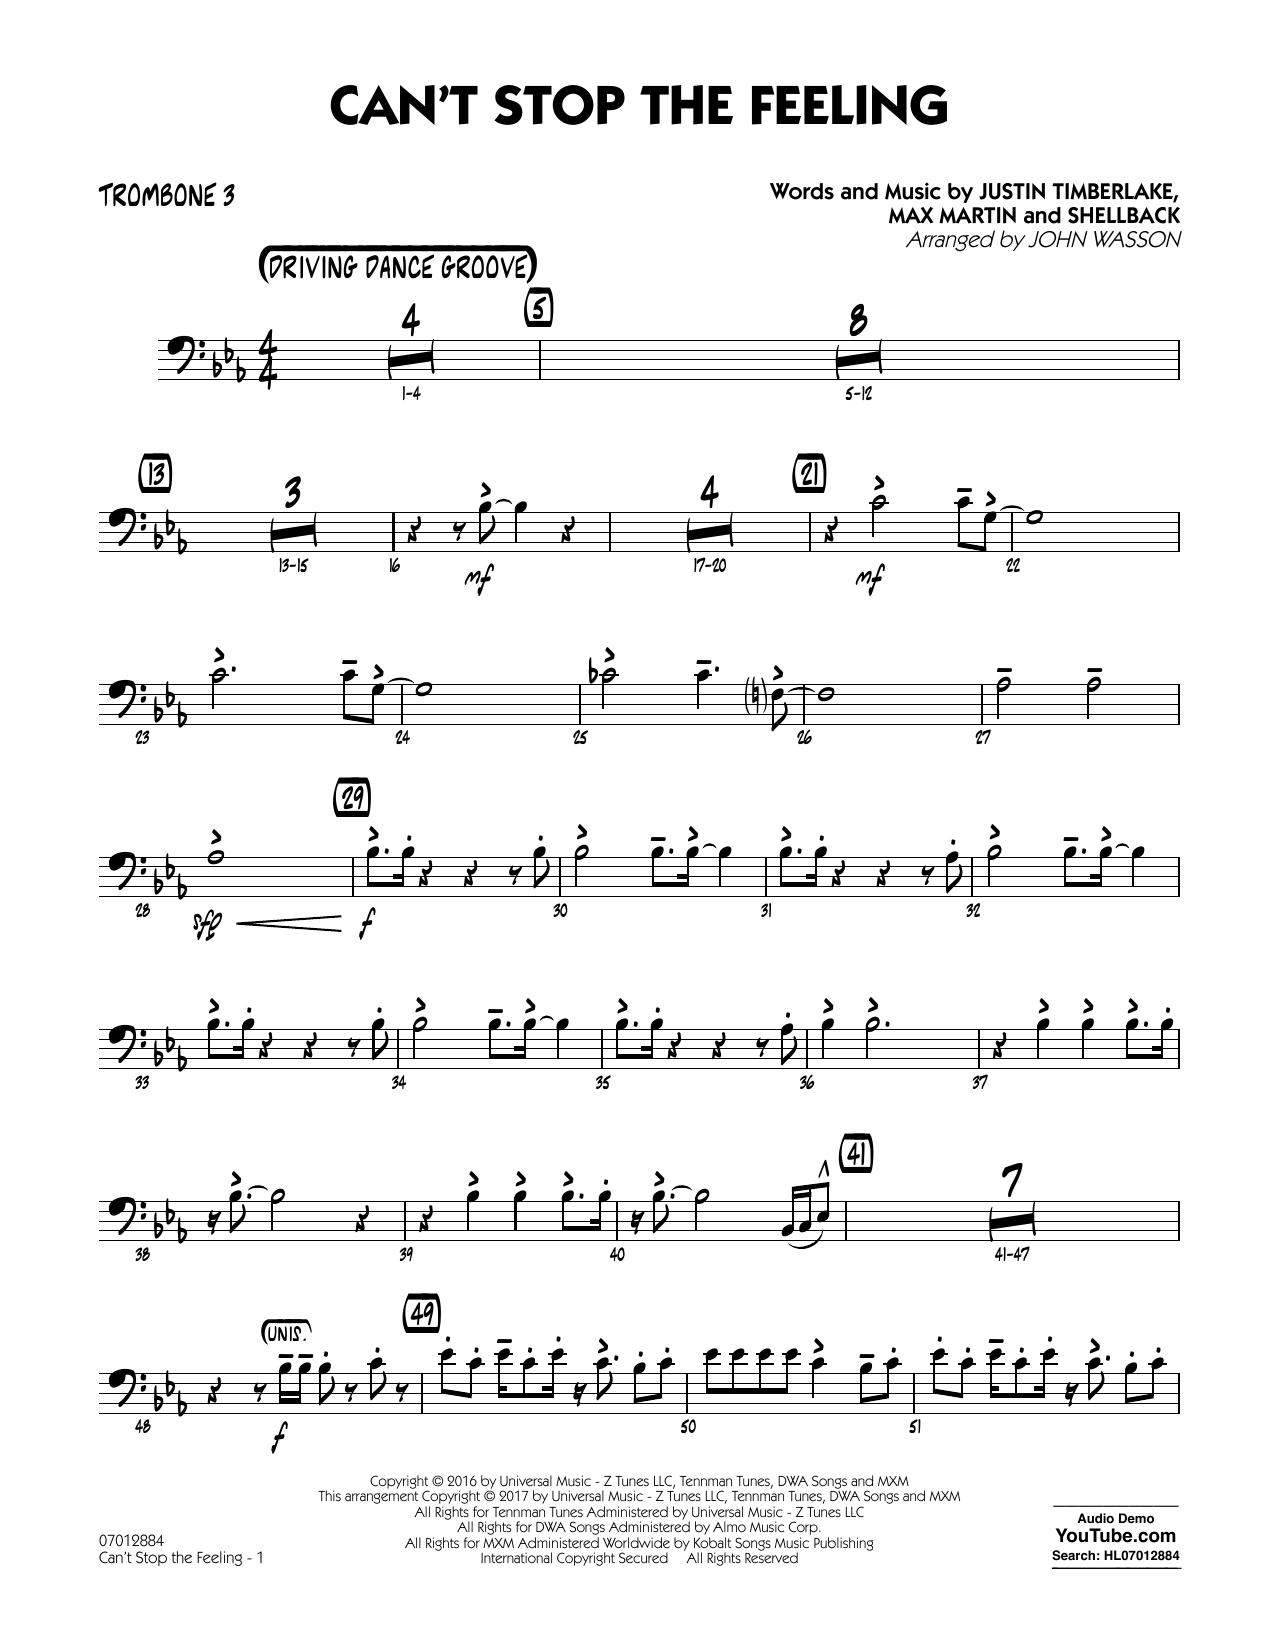 Can't Stop the Feeling - Trombone 3 Sheet Music